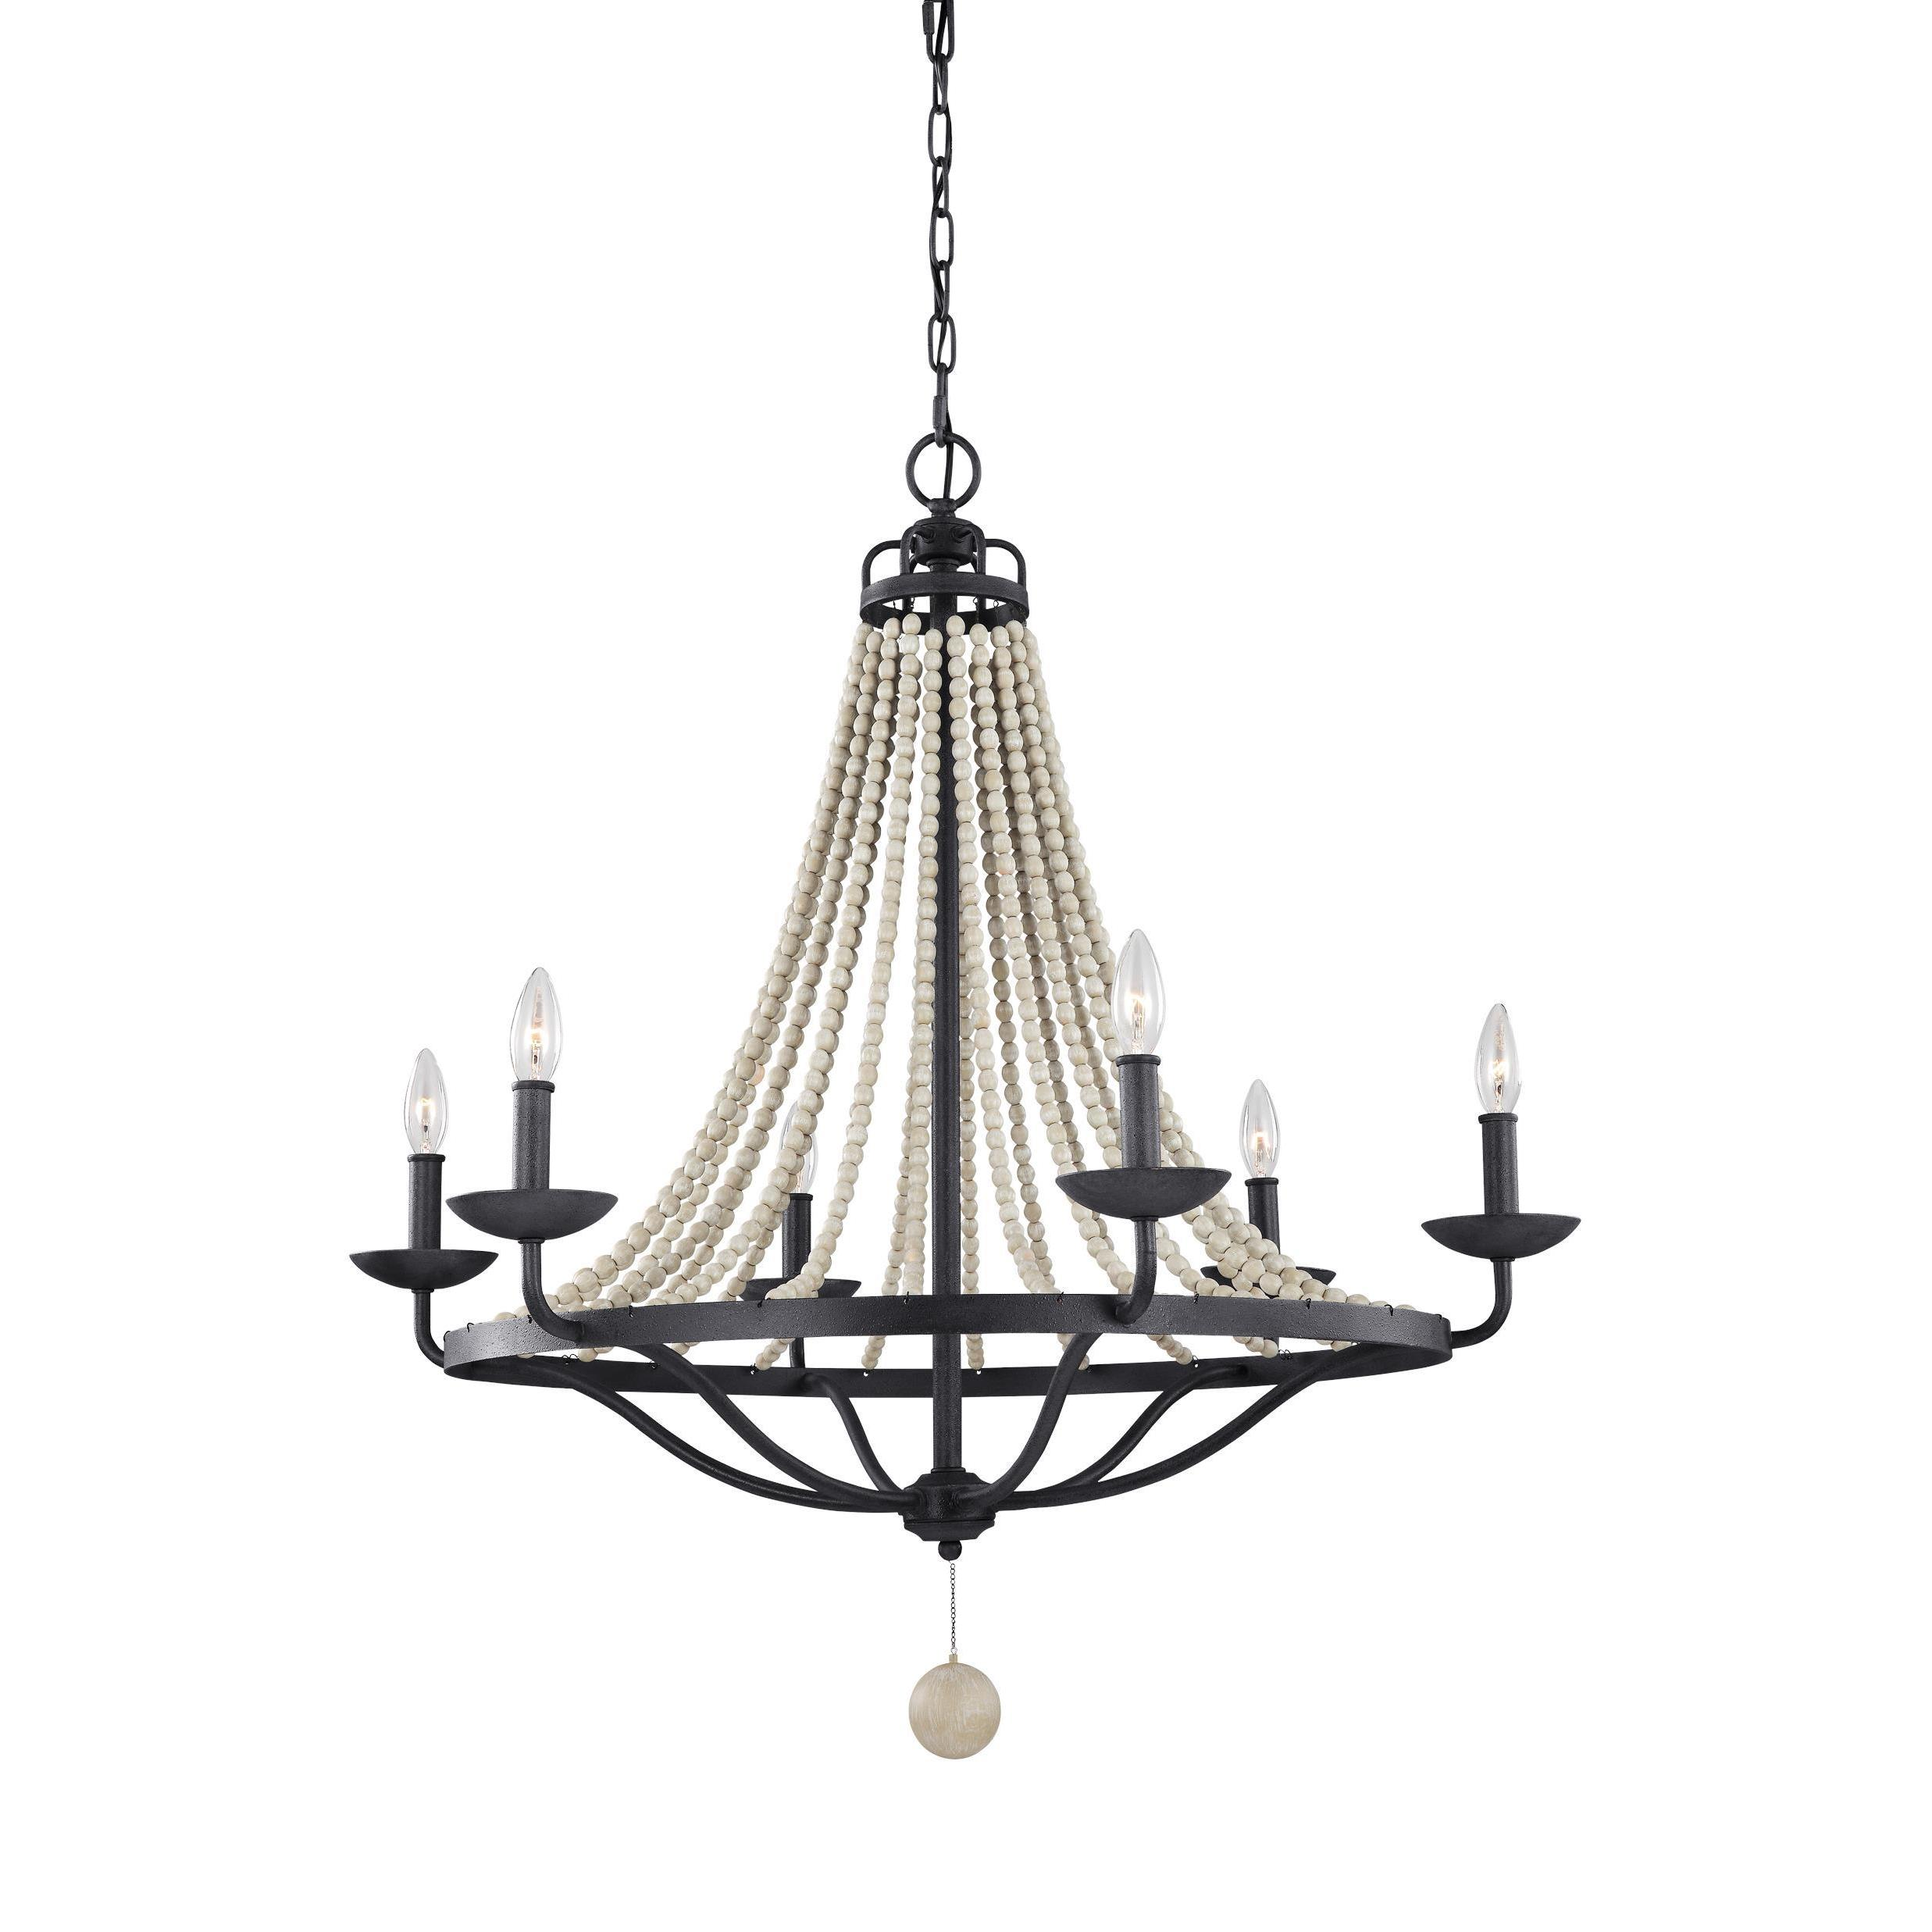 the arms almonds making icicle with grey fill look uncategorized mt vintage stunning archives chandelier drops category sparkly between icicles and spaces smokey larger large clear in companyuncategorized